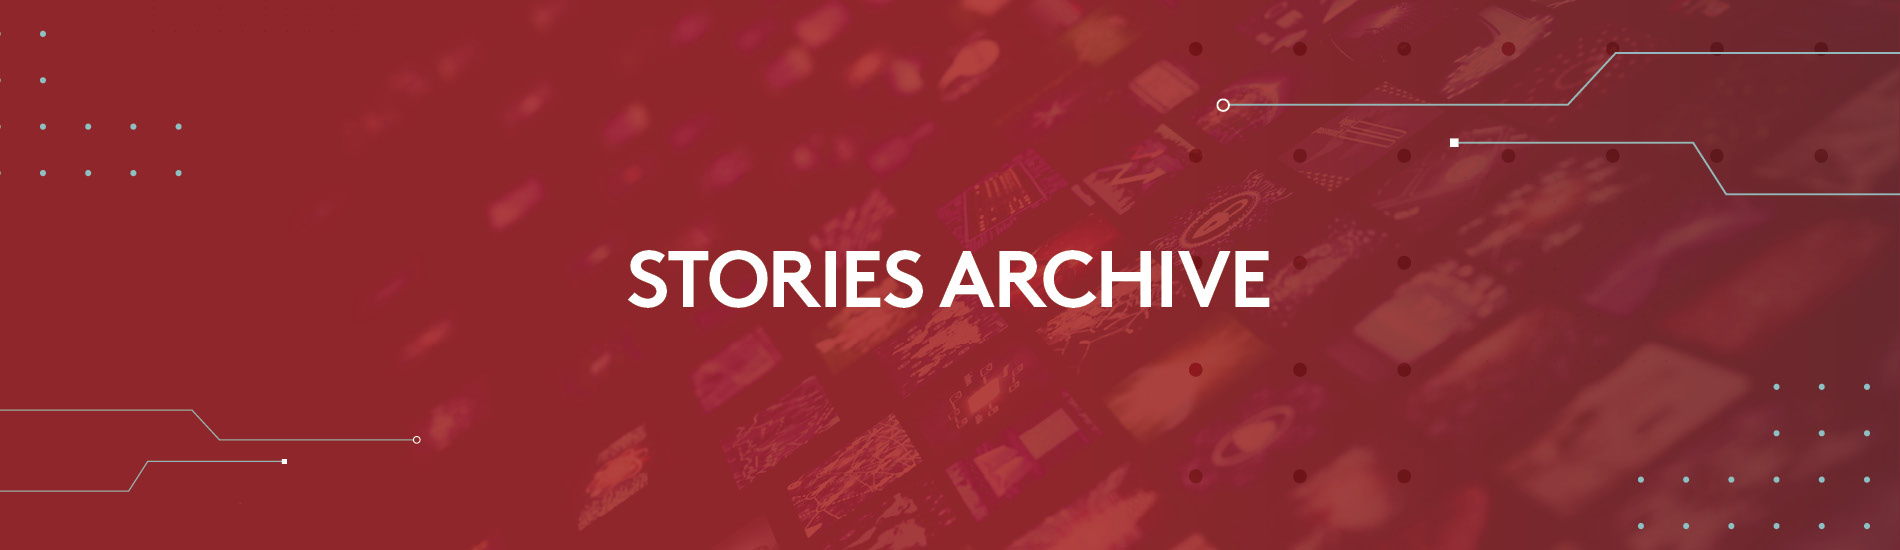 Stories archive